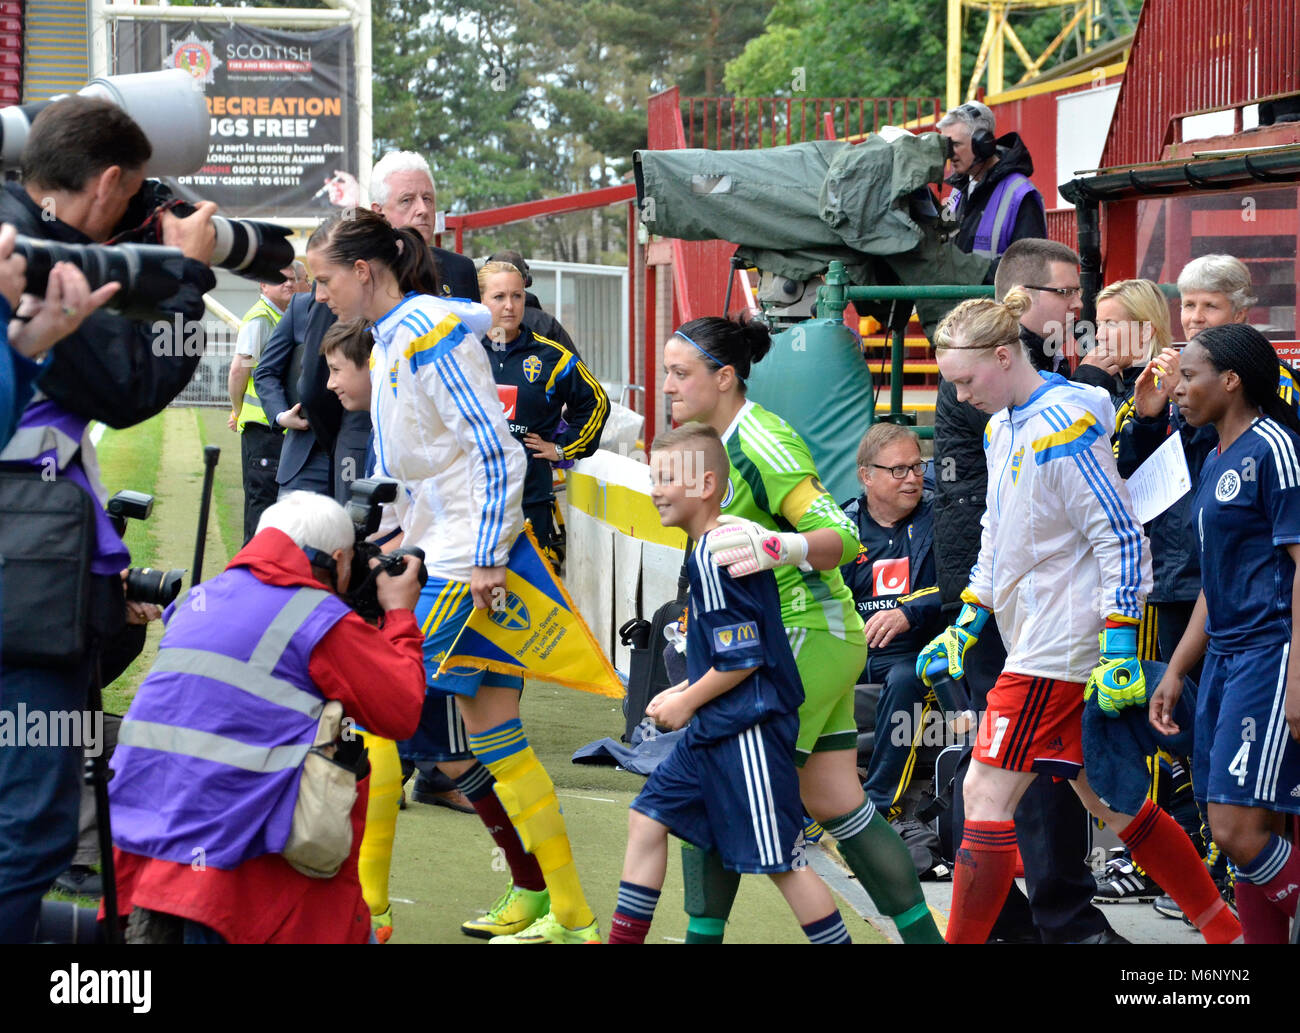 MOTHERWELL, SCOTLAND - JUNE 14th 2014: The Scotland and Sweden's national football team come out of the tunnel in Stock Photo